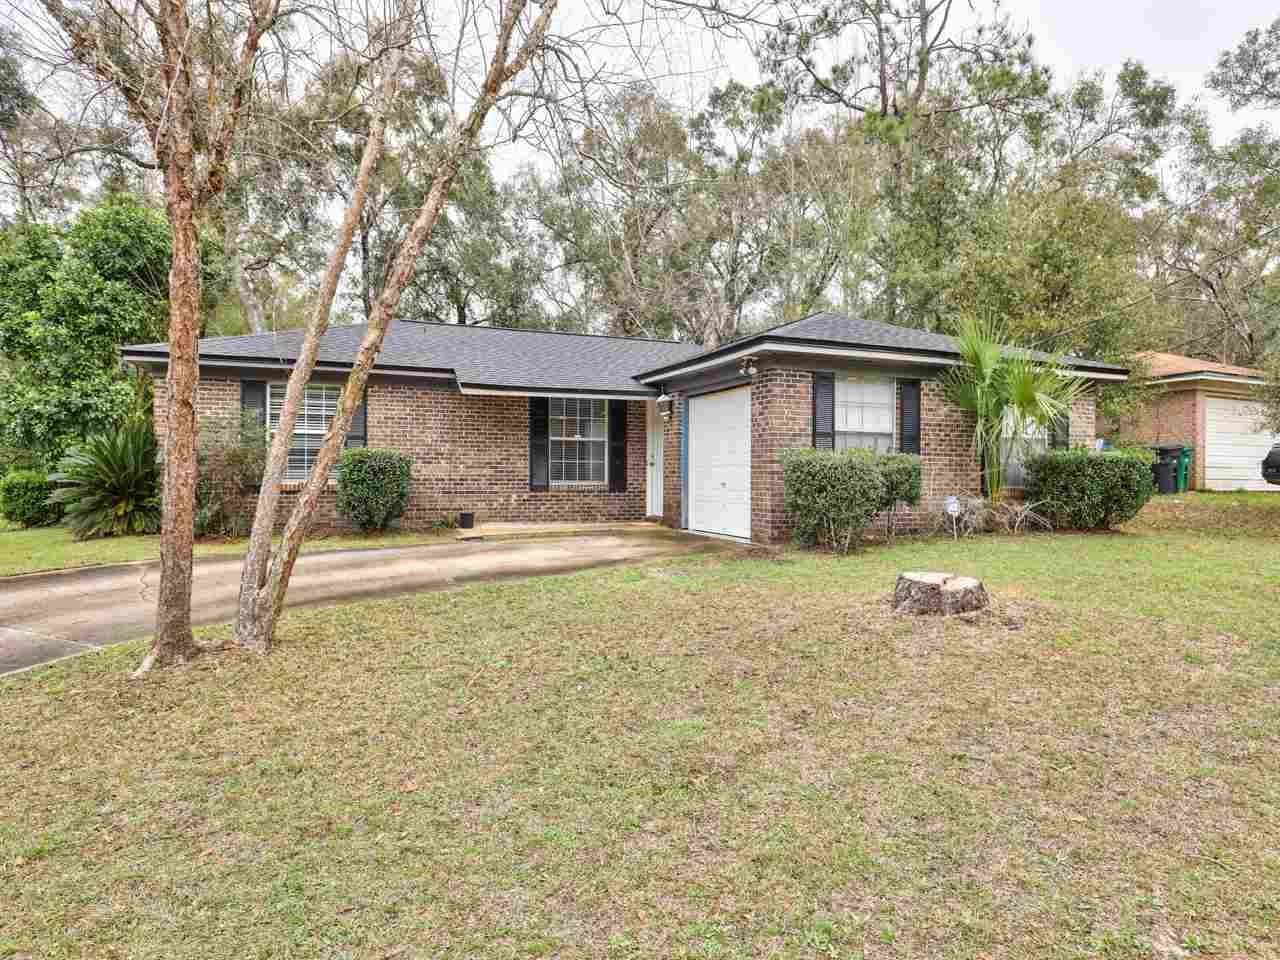 Photo of 5652 Old Hickory Lane, TALLAHASSEE, FL 32303 (MLS # 315948)